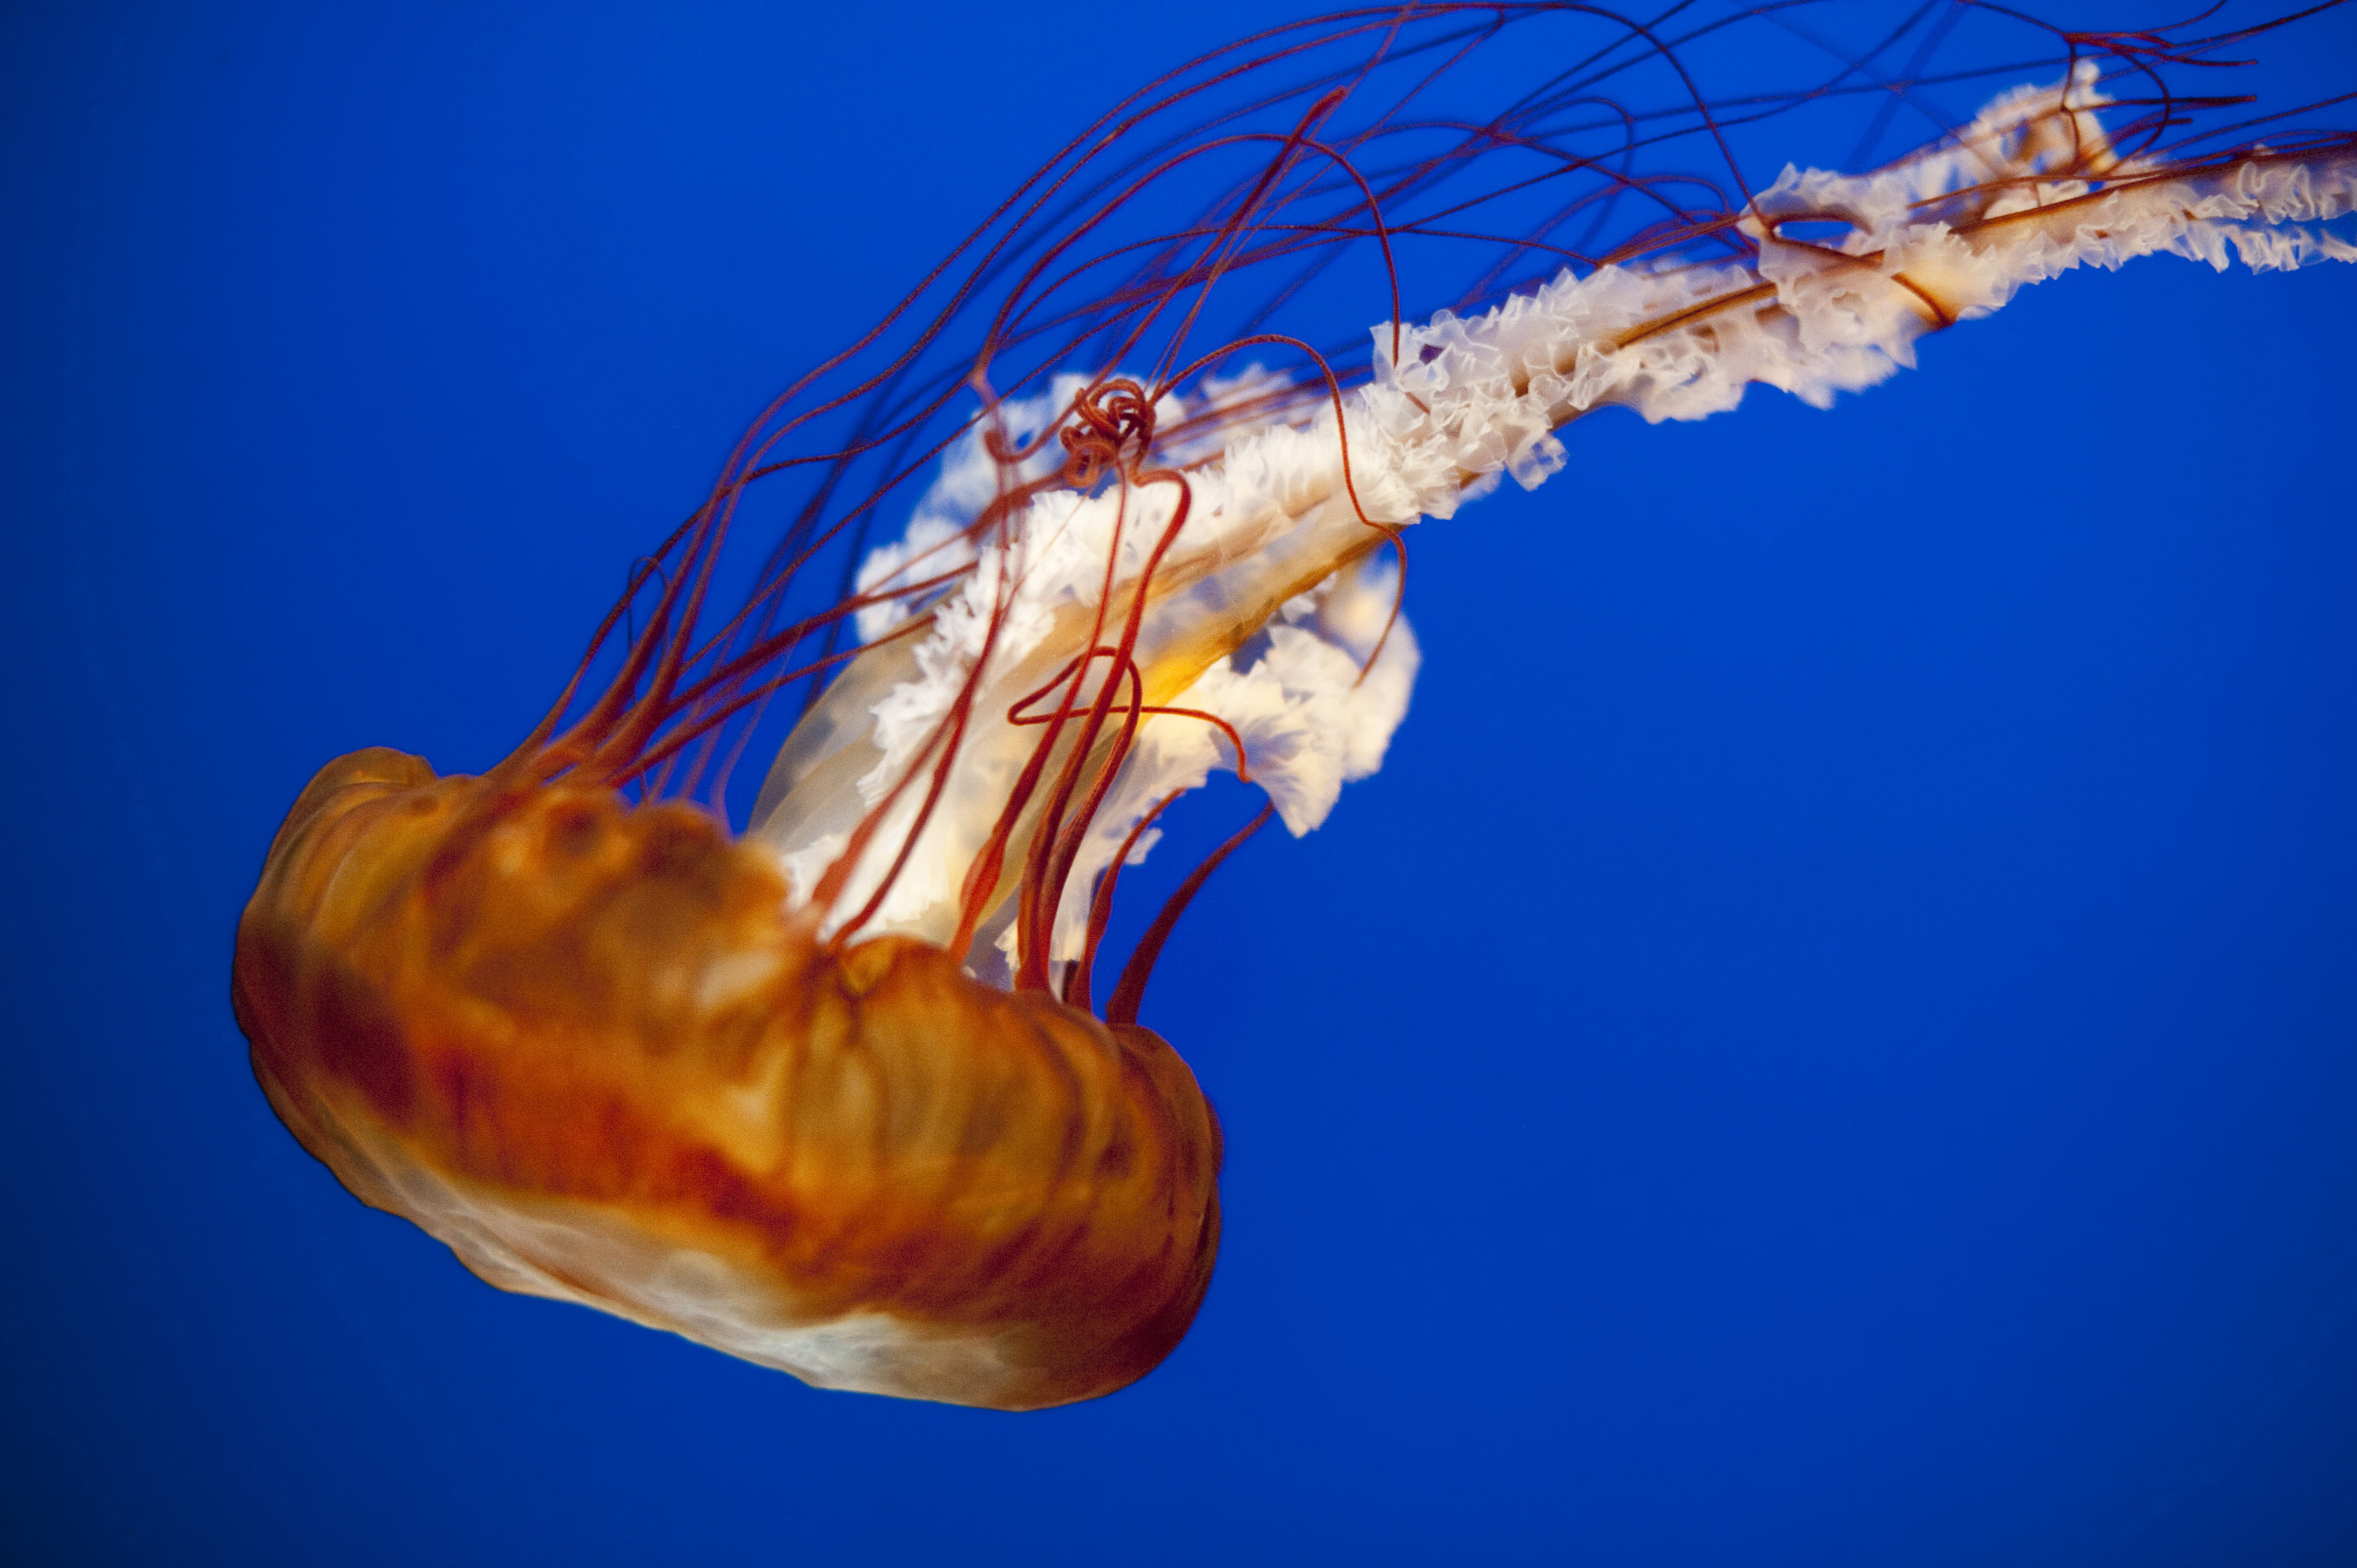 free stock photo 7434 jellyfish lappets freeimageslive